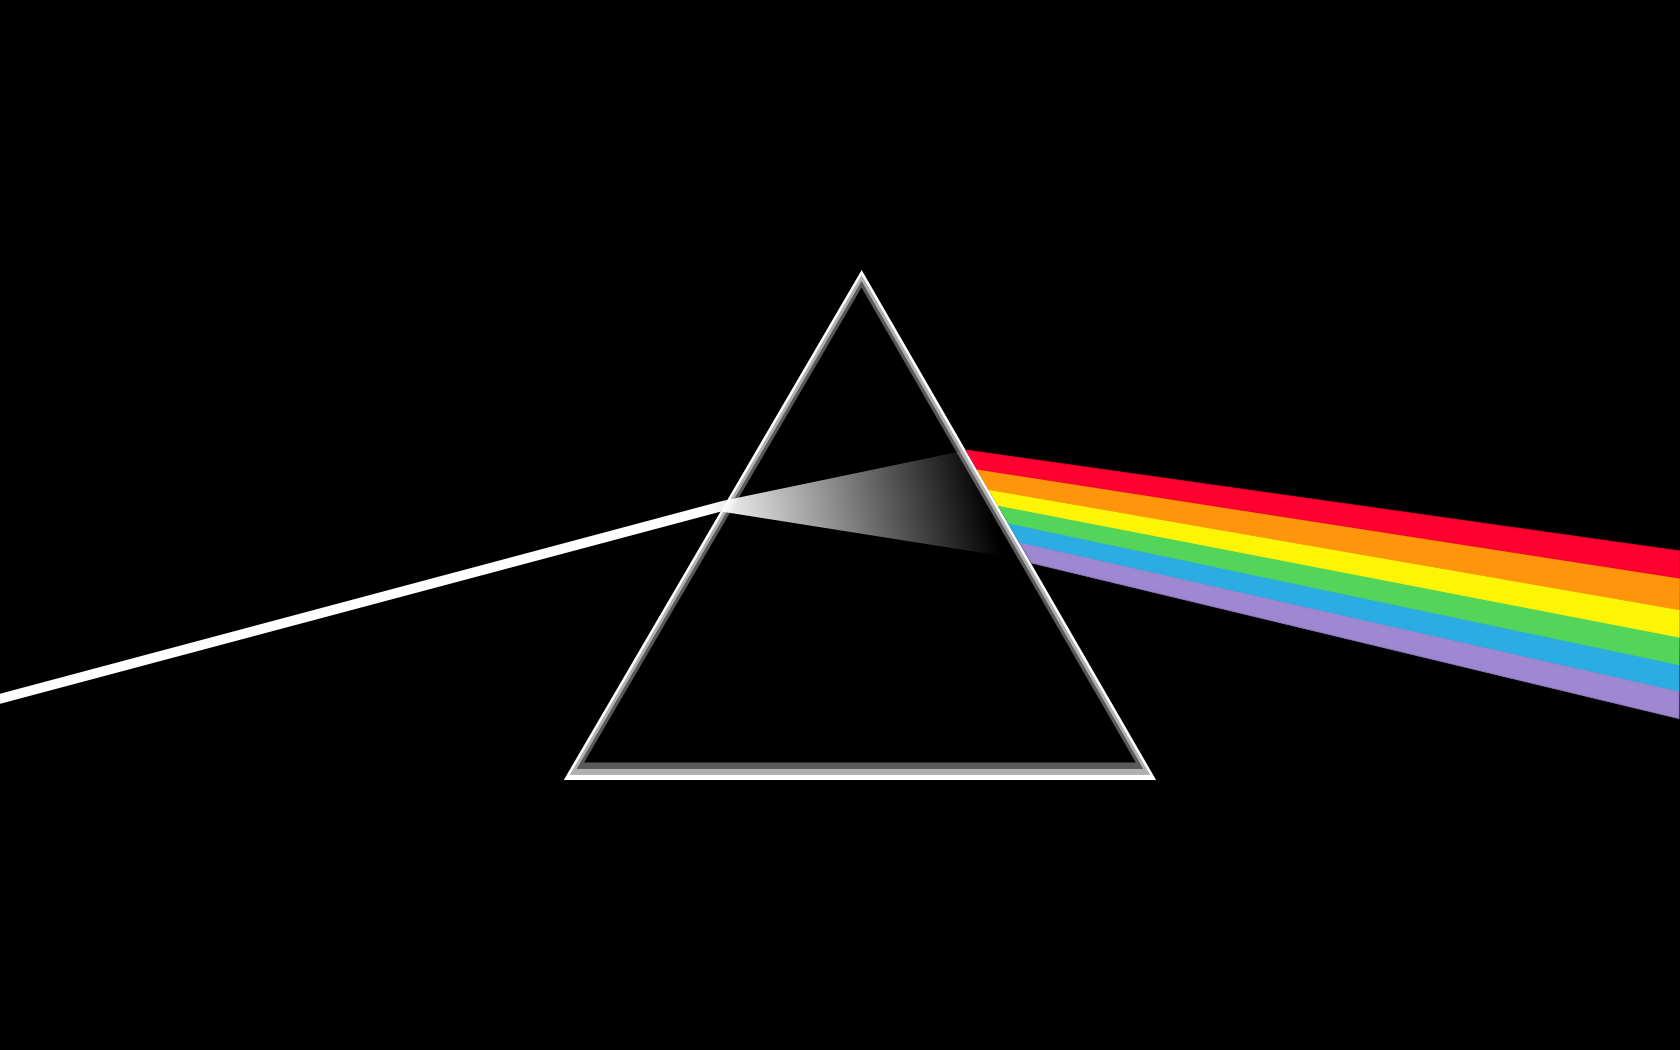 pink-floyd-dark-side-of-the-moon-wallpaper-2